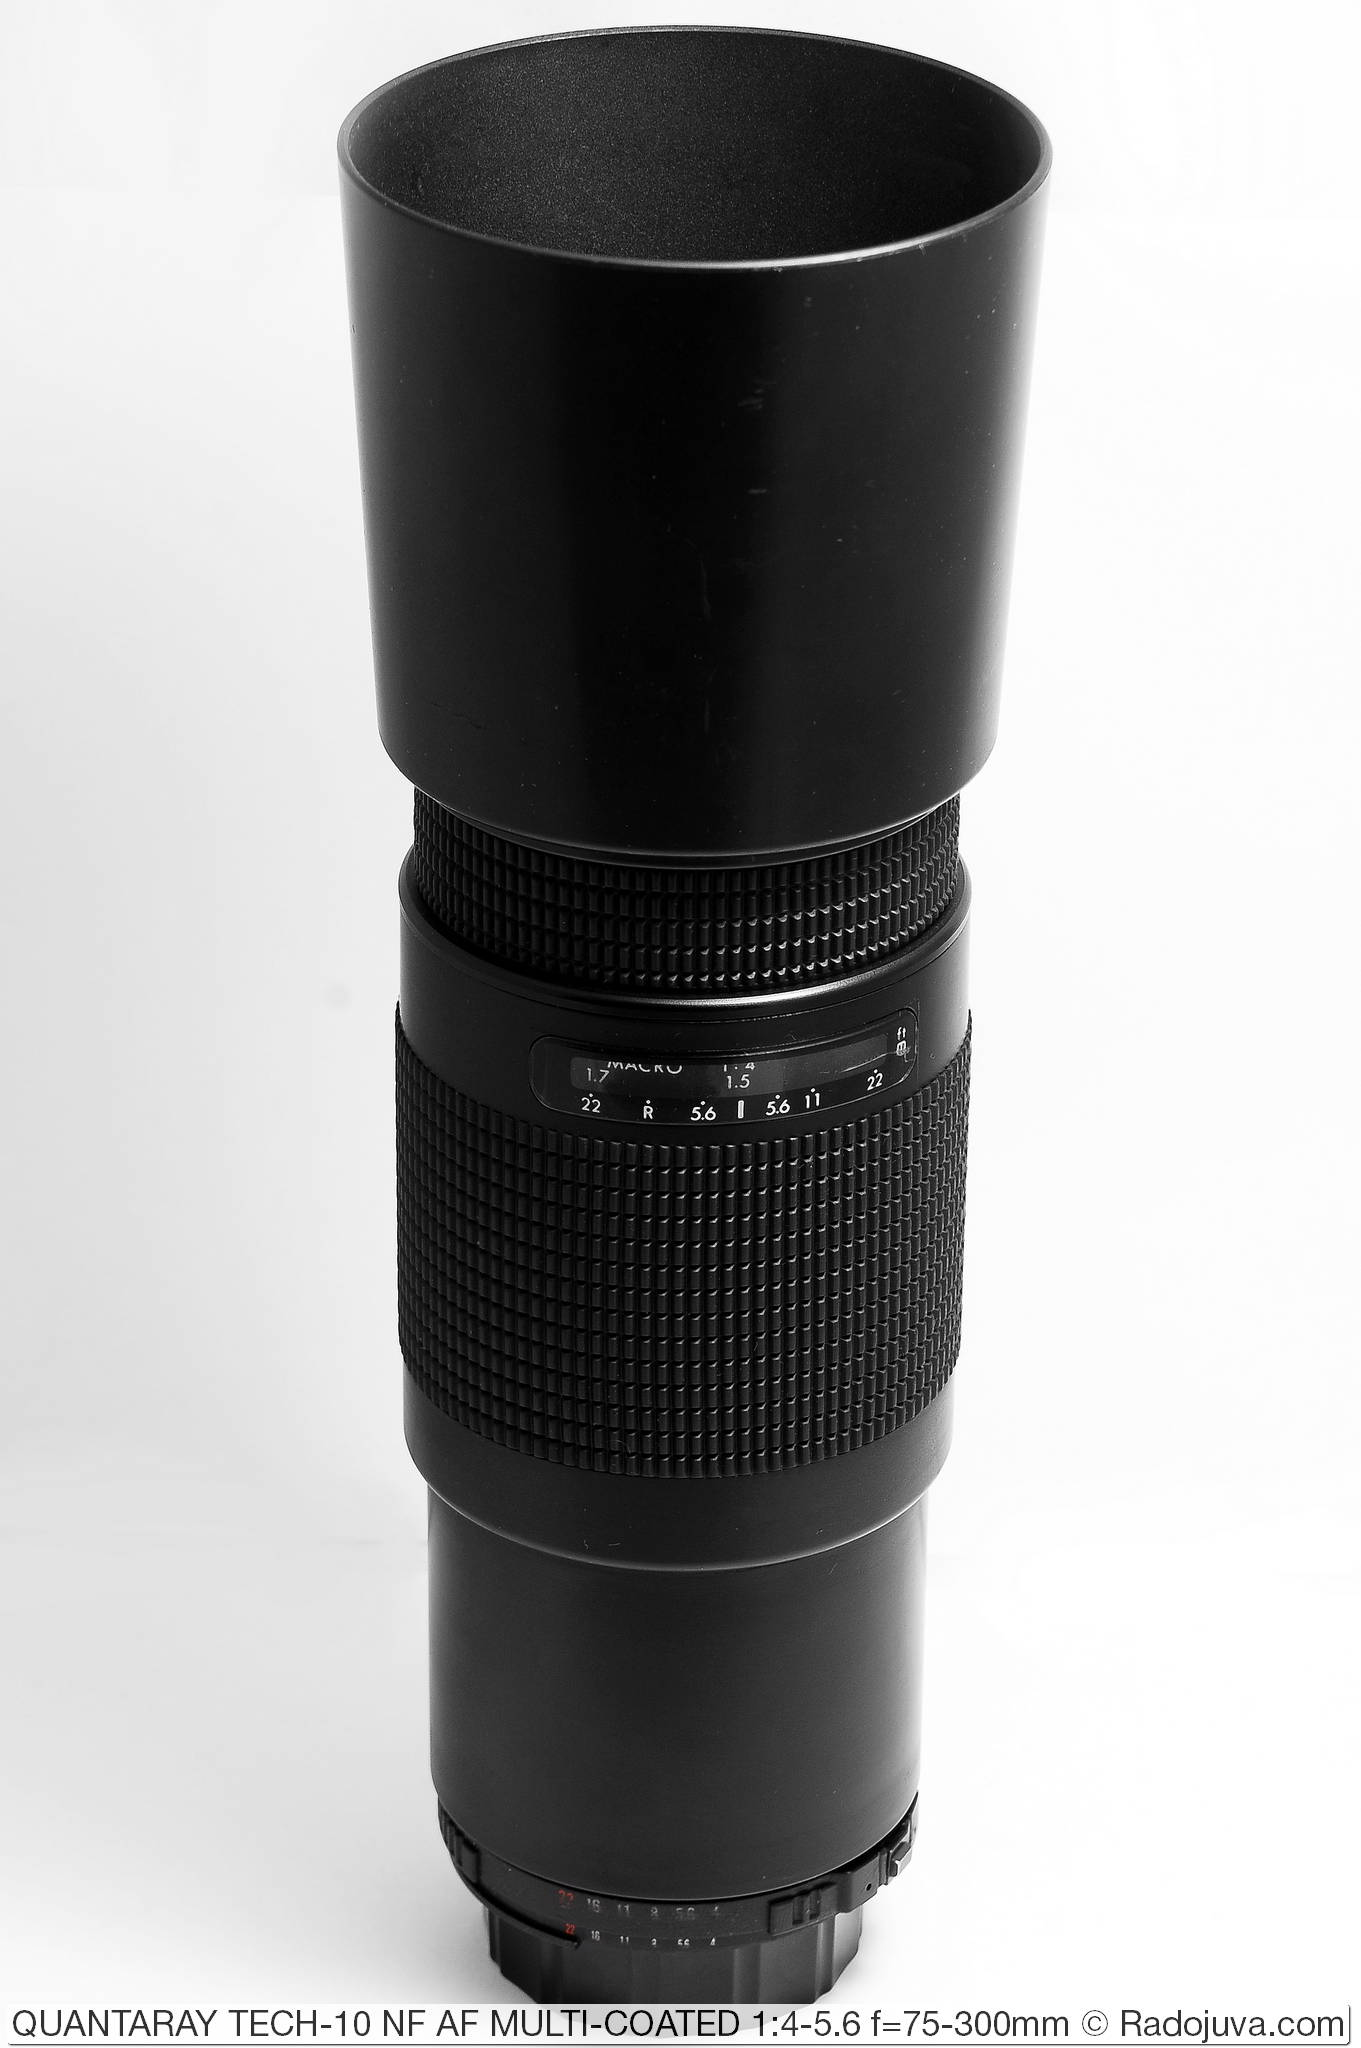 QUANTARAY TECH-10 NF AF MULTI-COATED 1:4-5.6 f=75-300mm